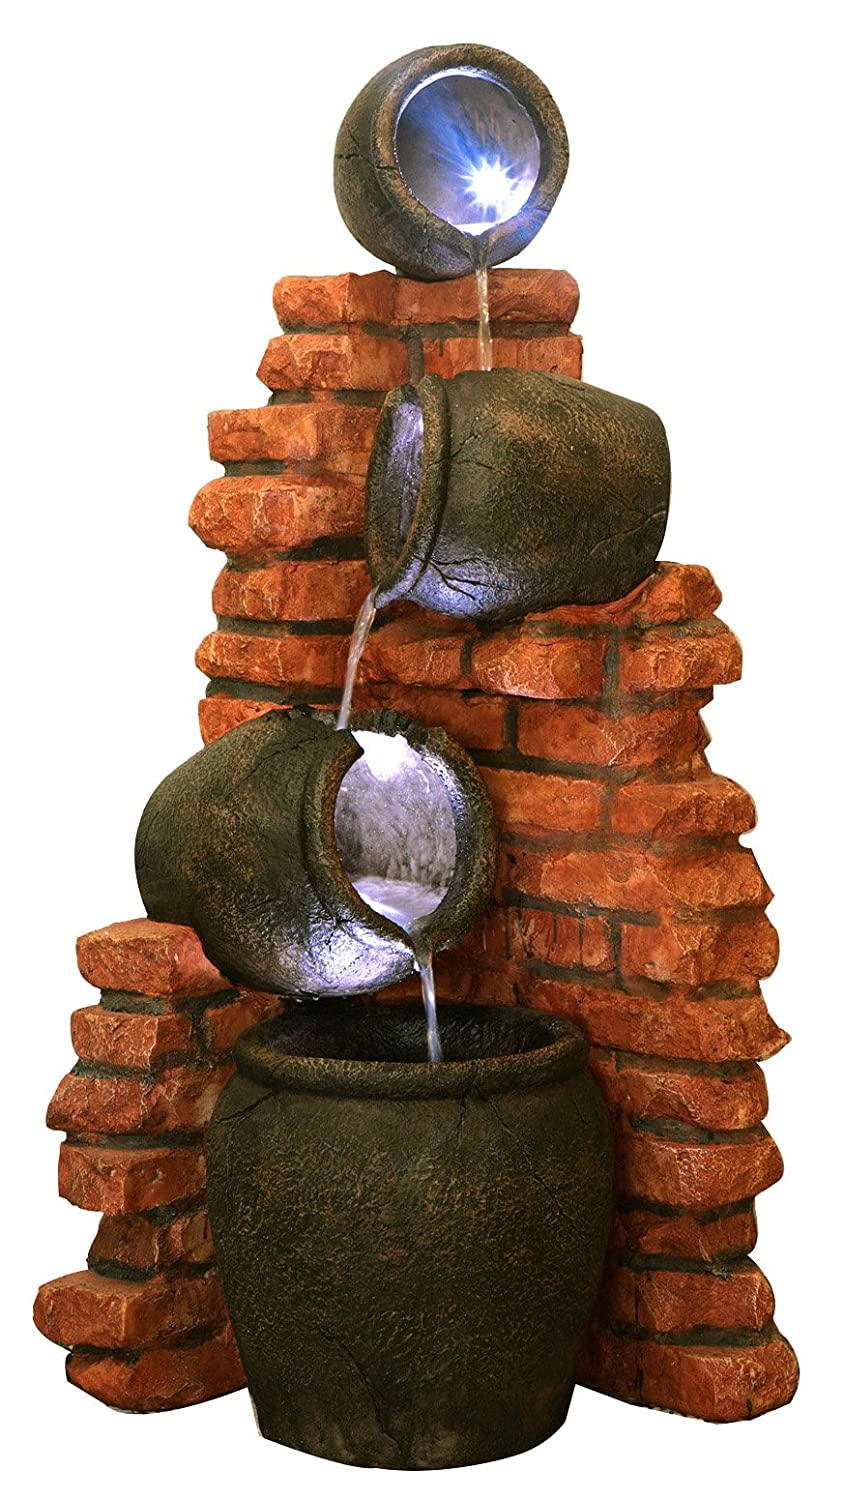 Regal 4-Tier Oil Jar Water Feature with Lights by Ambienté H119cm